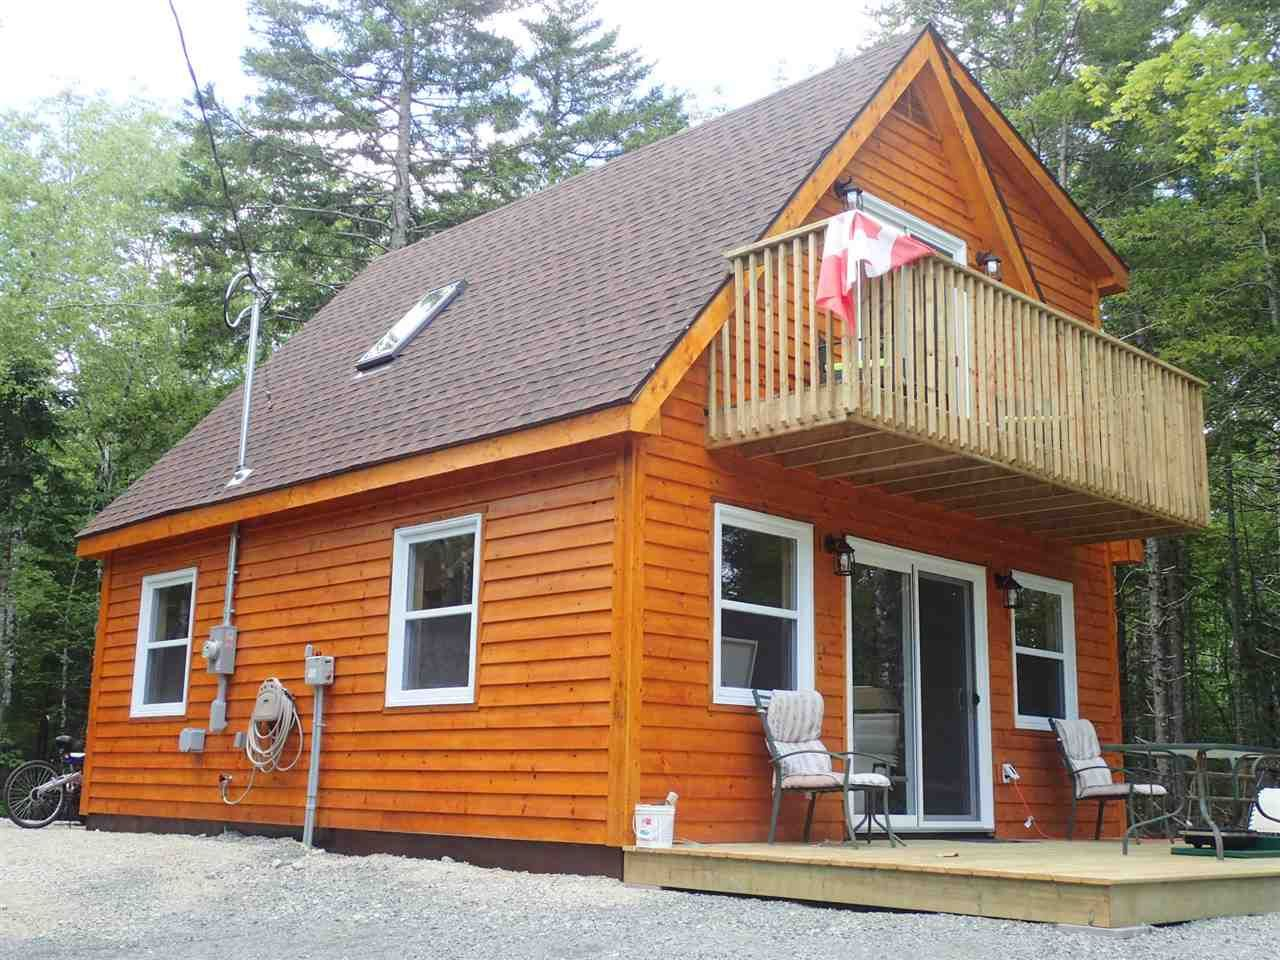 Main Photo: 12-60 Meek Arm Trail in East Uniacke: 105-East Hants/Colchester West Residential for sale (Halifax-Dartmouth)  : MLS®# 202011628